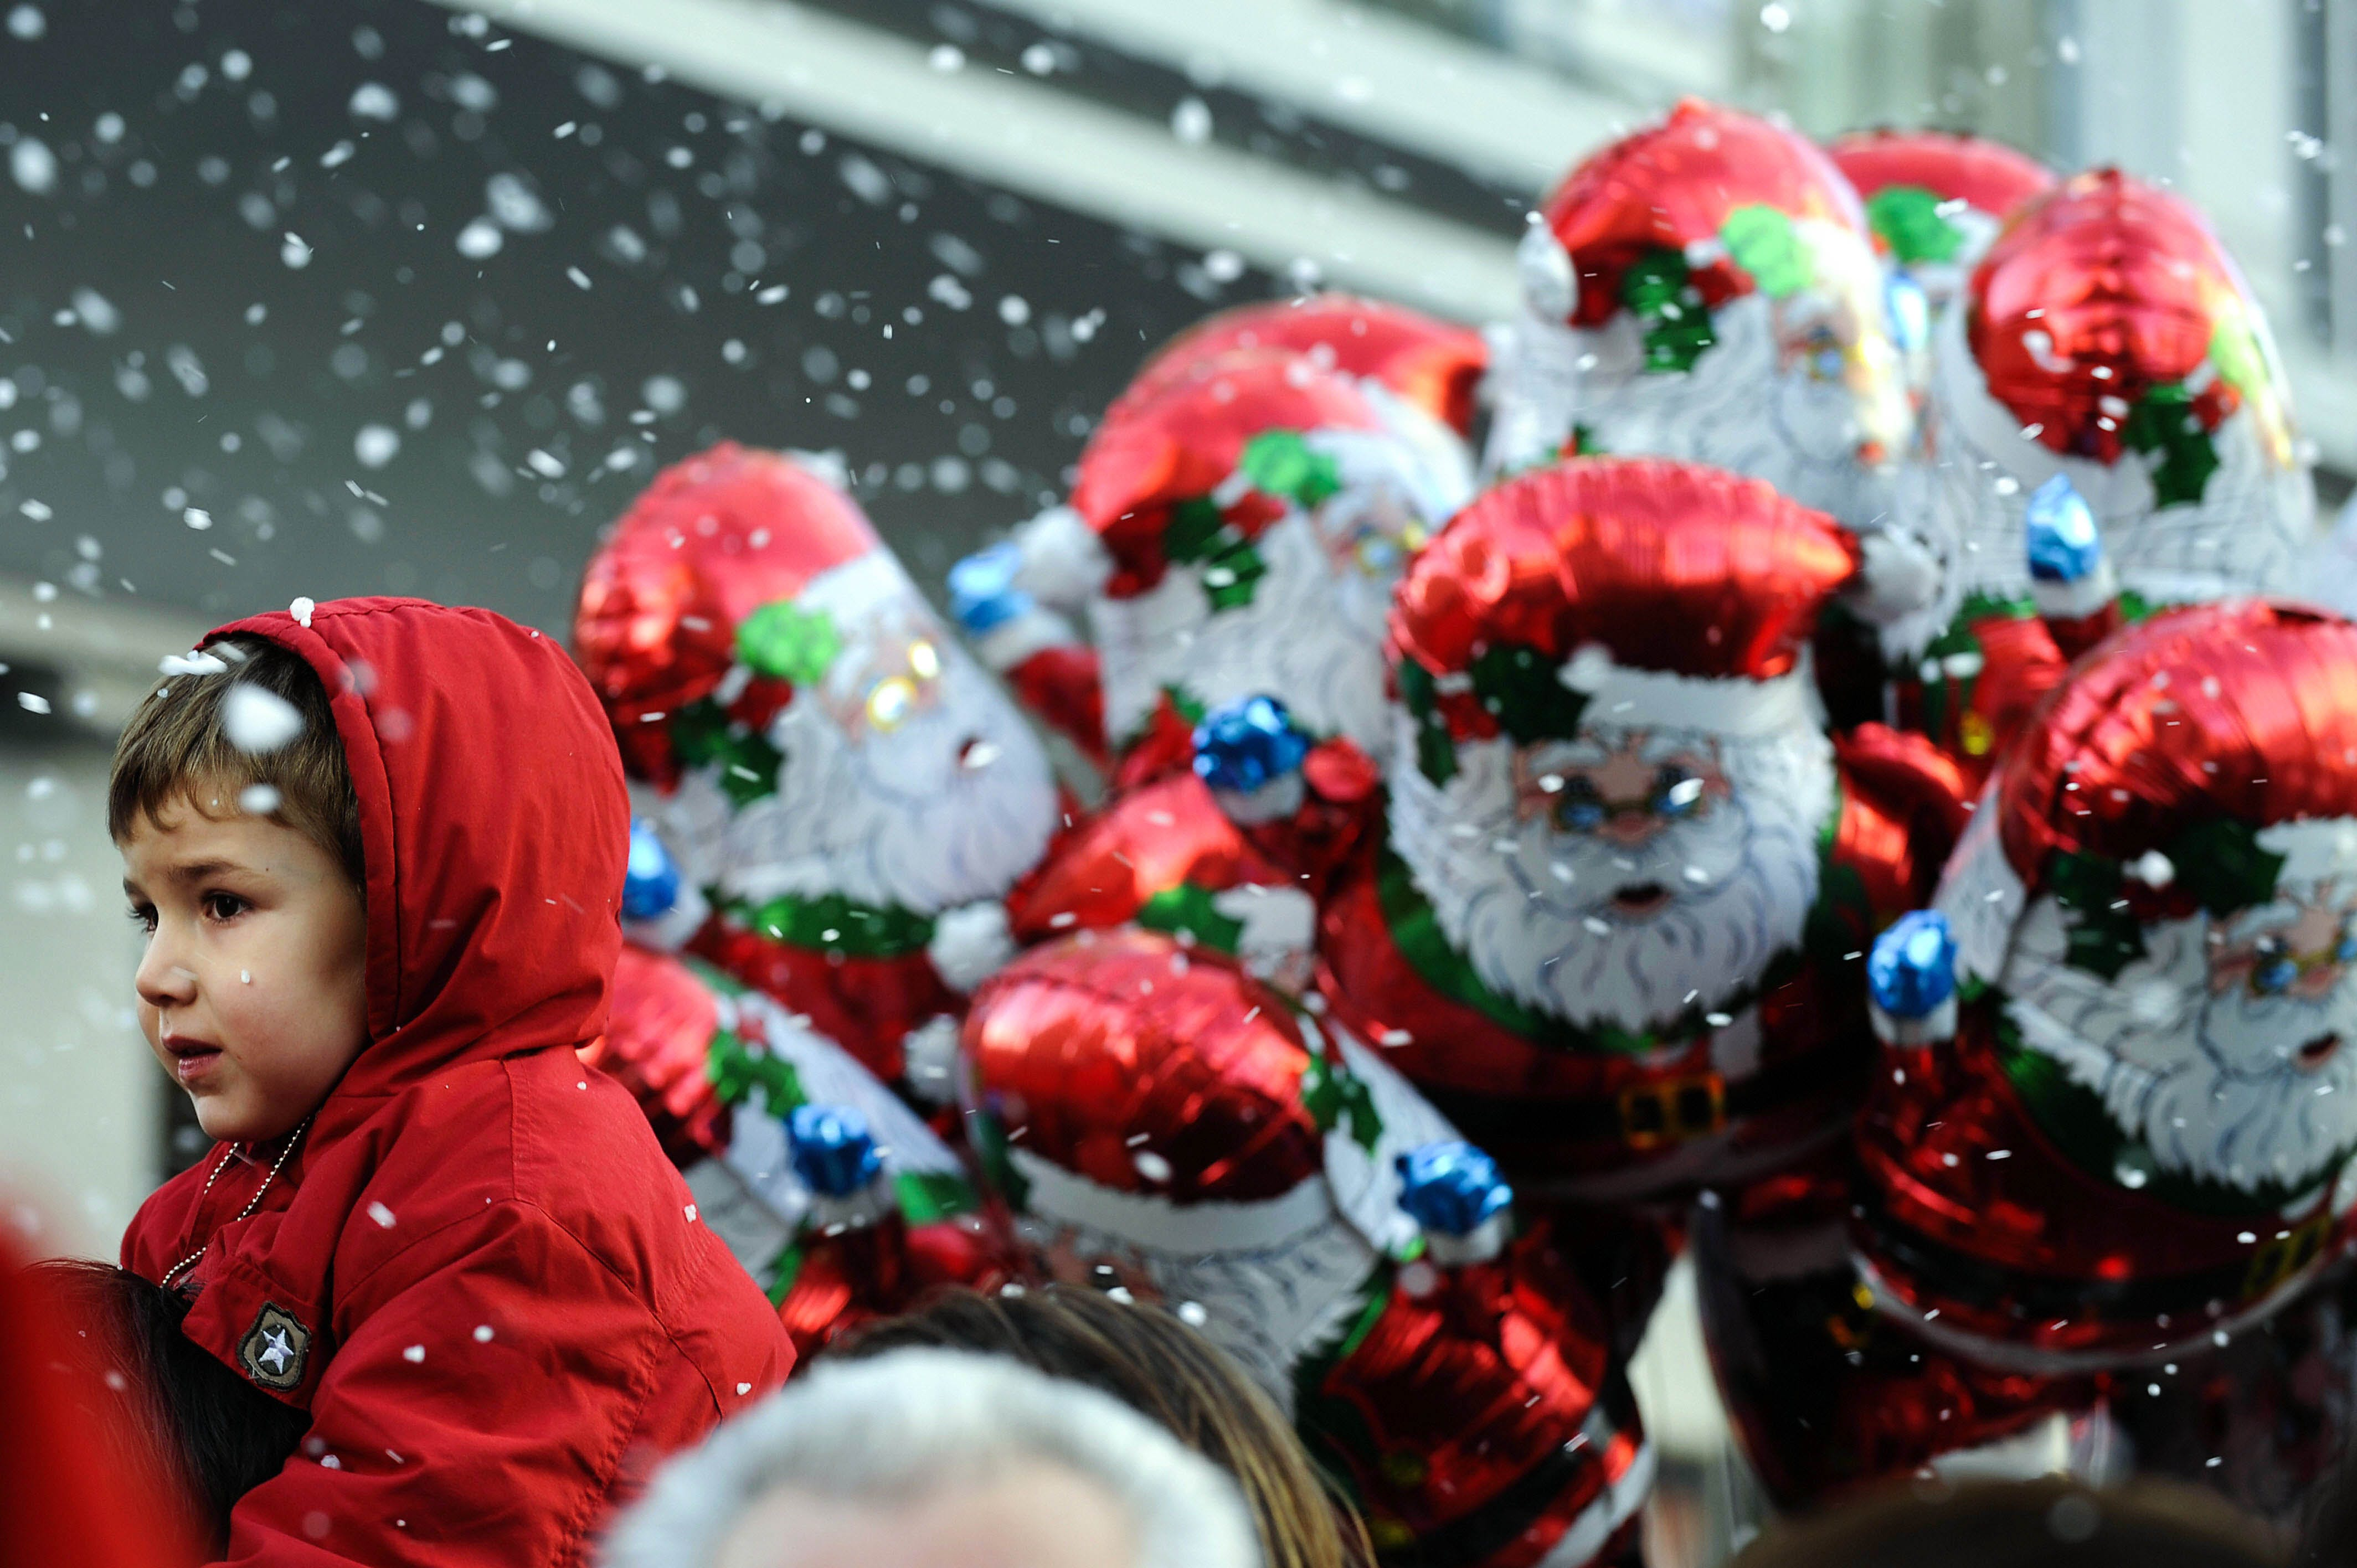 Vancouver Santa Clause Parade Asks Attendees to Refrain From Smoking Pot1 2 This Canadian City Said No Pot at the Parade—But Did People Listen?